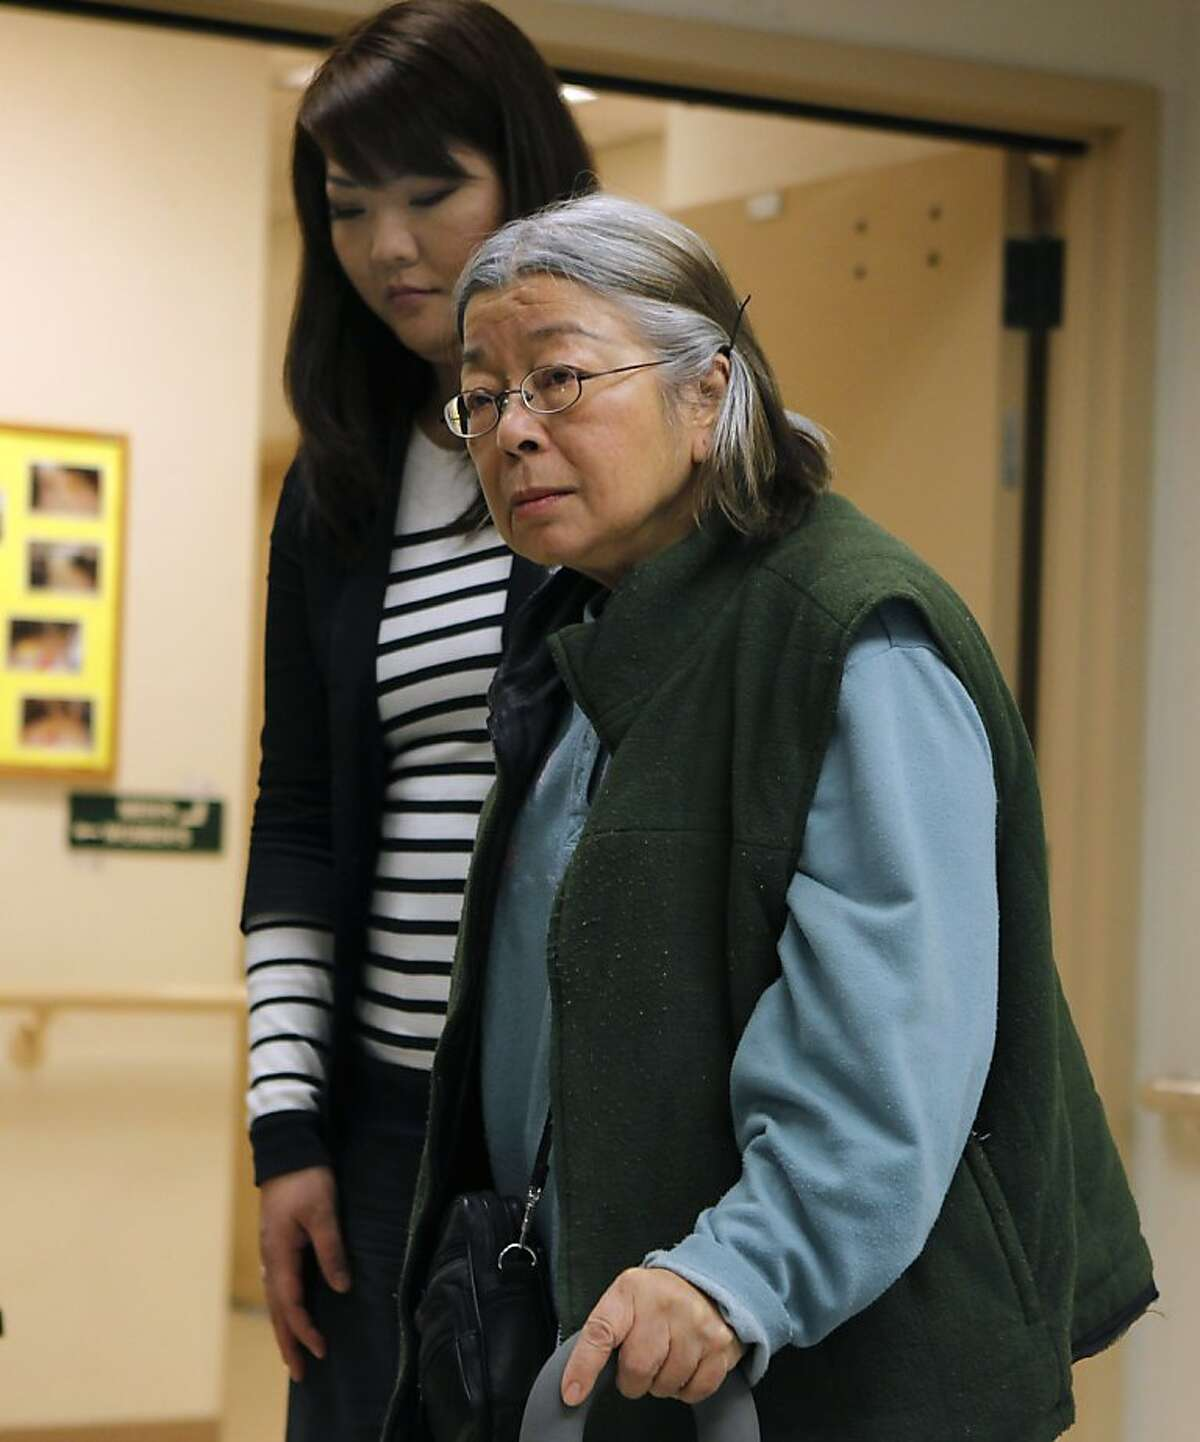 Jeannie Wong is assisted by Margaret Chao after describing her struggle with suicidal thoughts in San Francisco, Calif. on Wednesday, Jan. 16, 2013. Chao was one of the researchers on a study which focuses on suicide among the Chinese American senior population.